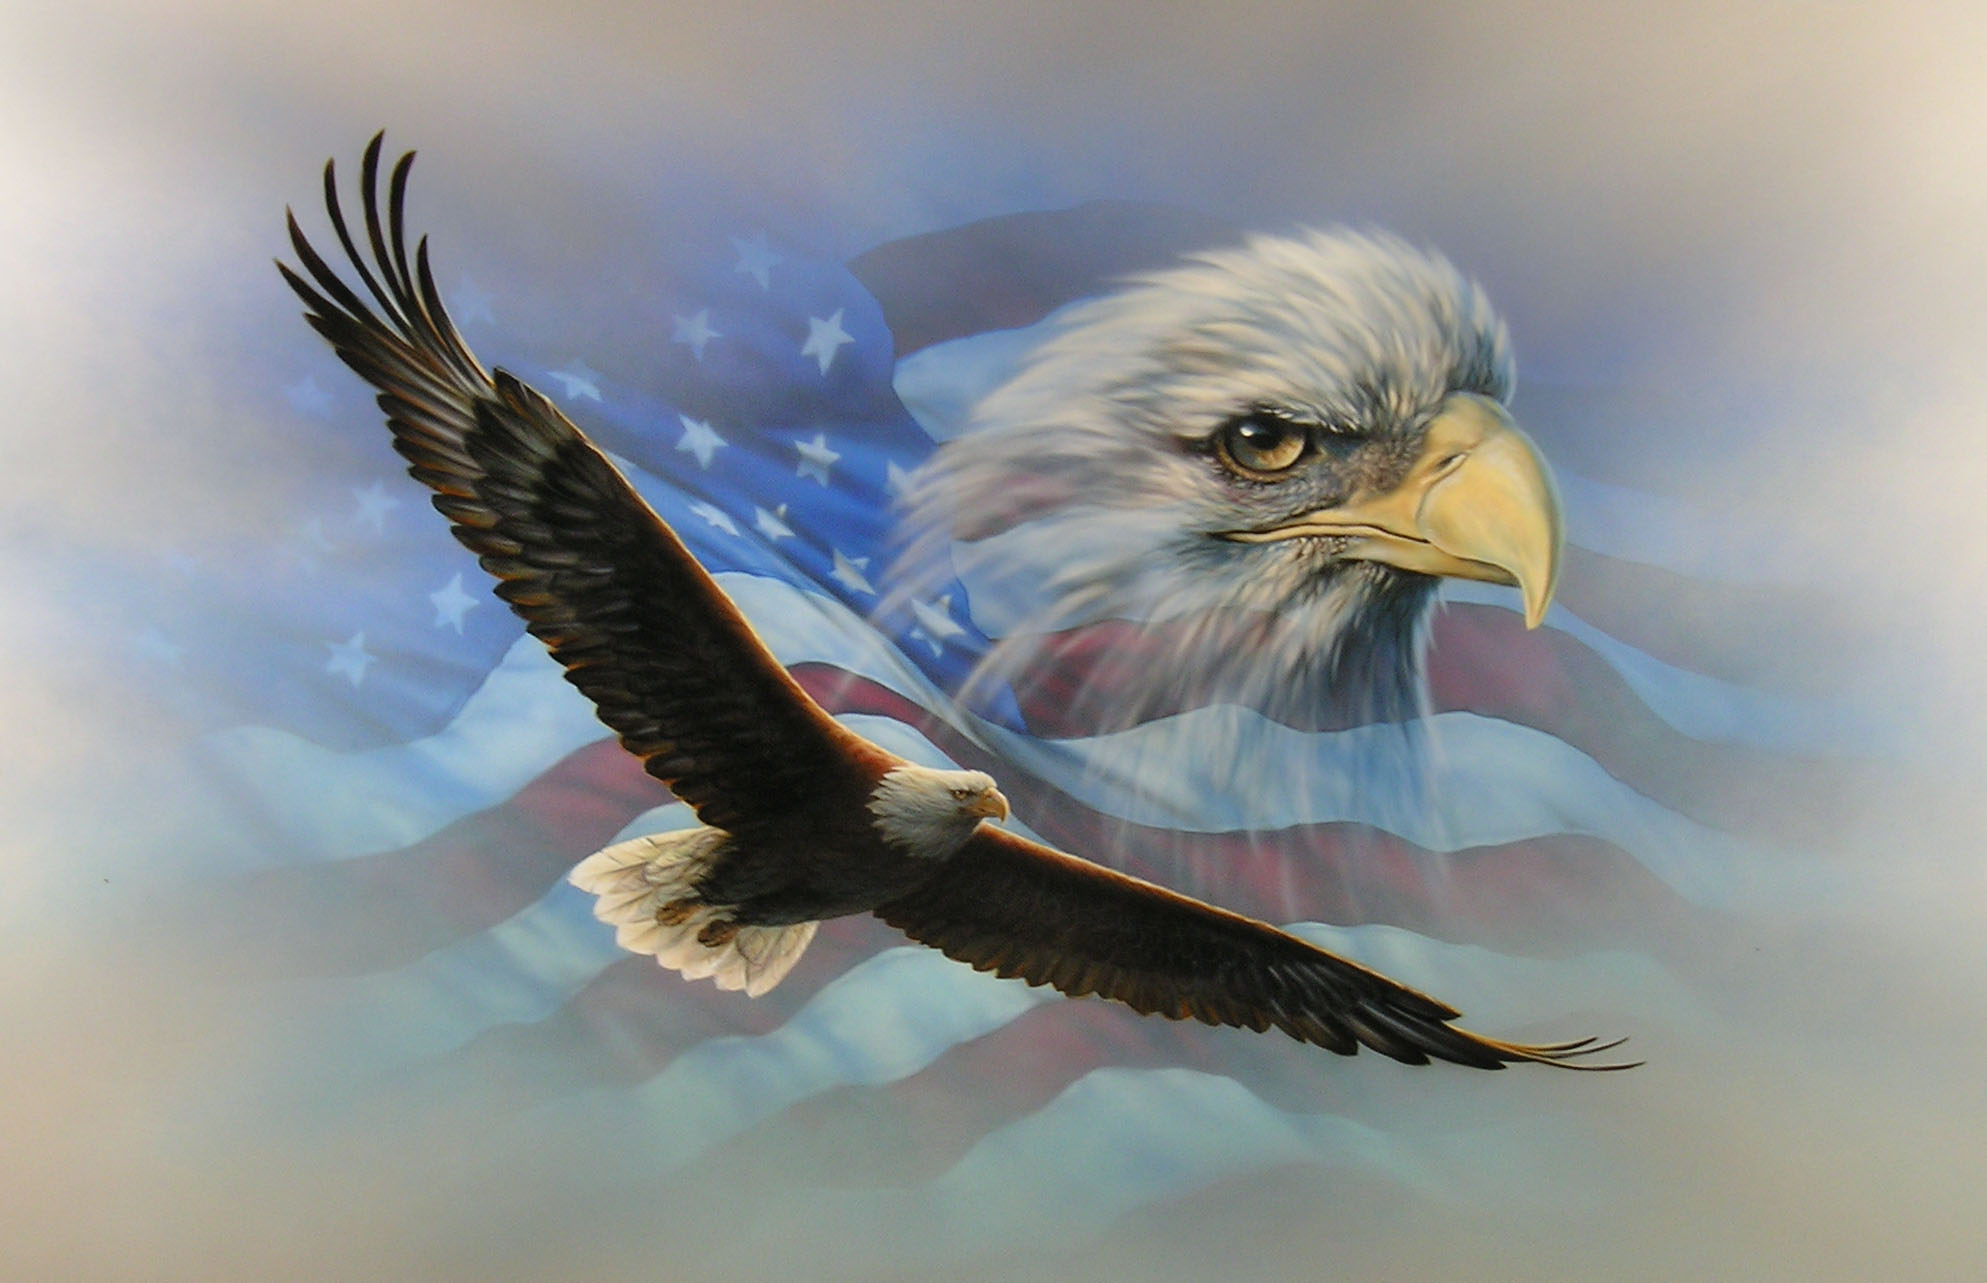 Home Places Travel American Flag Eagle Wallpaper 1987x1283